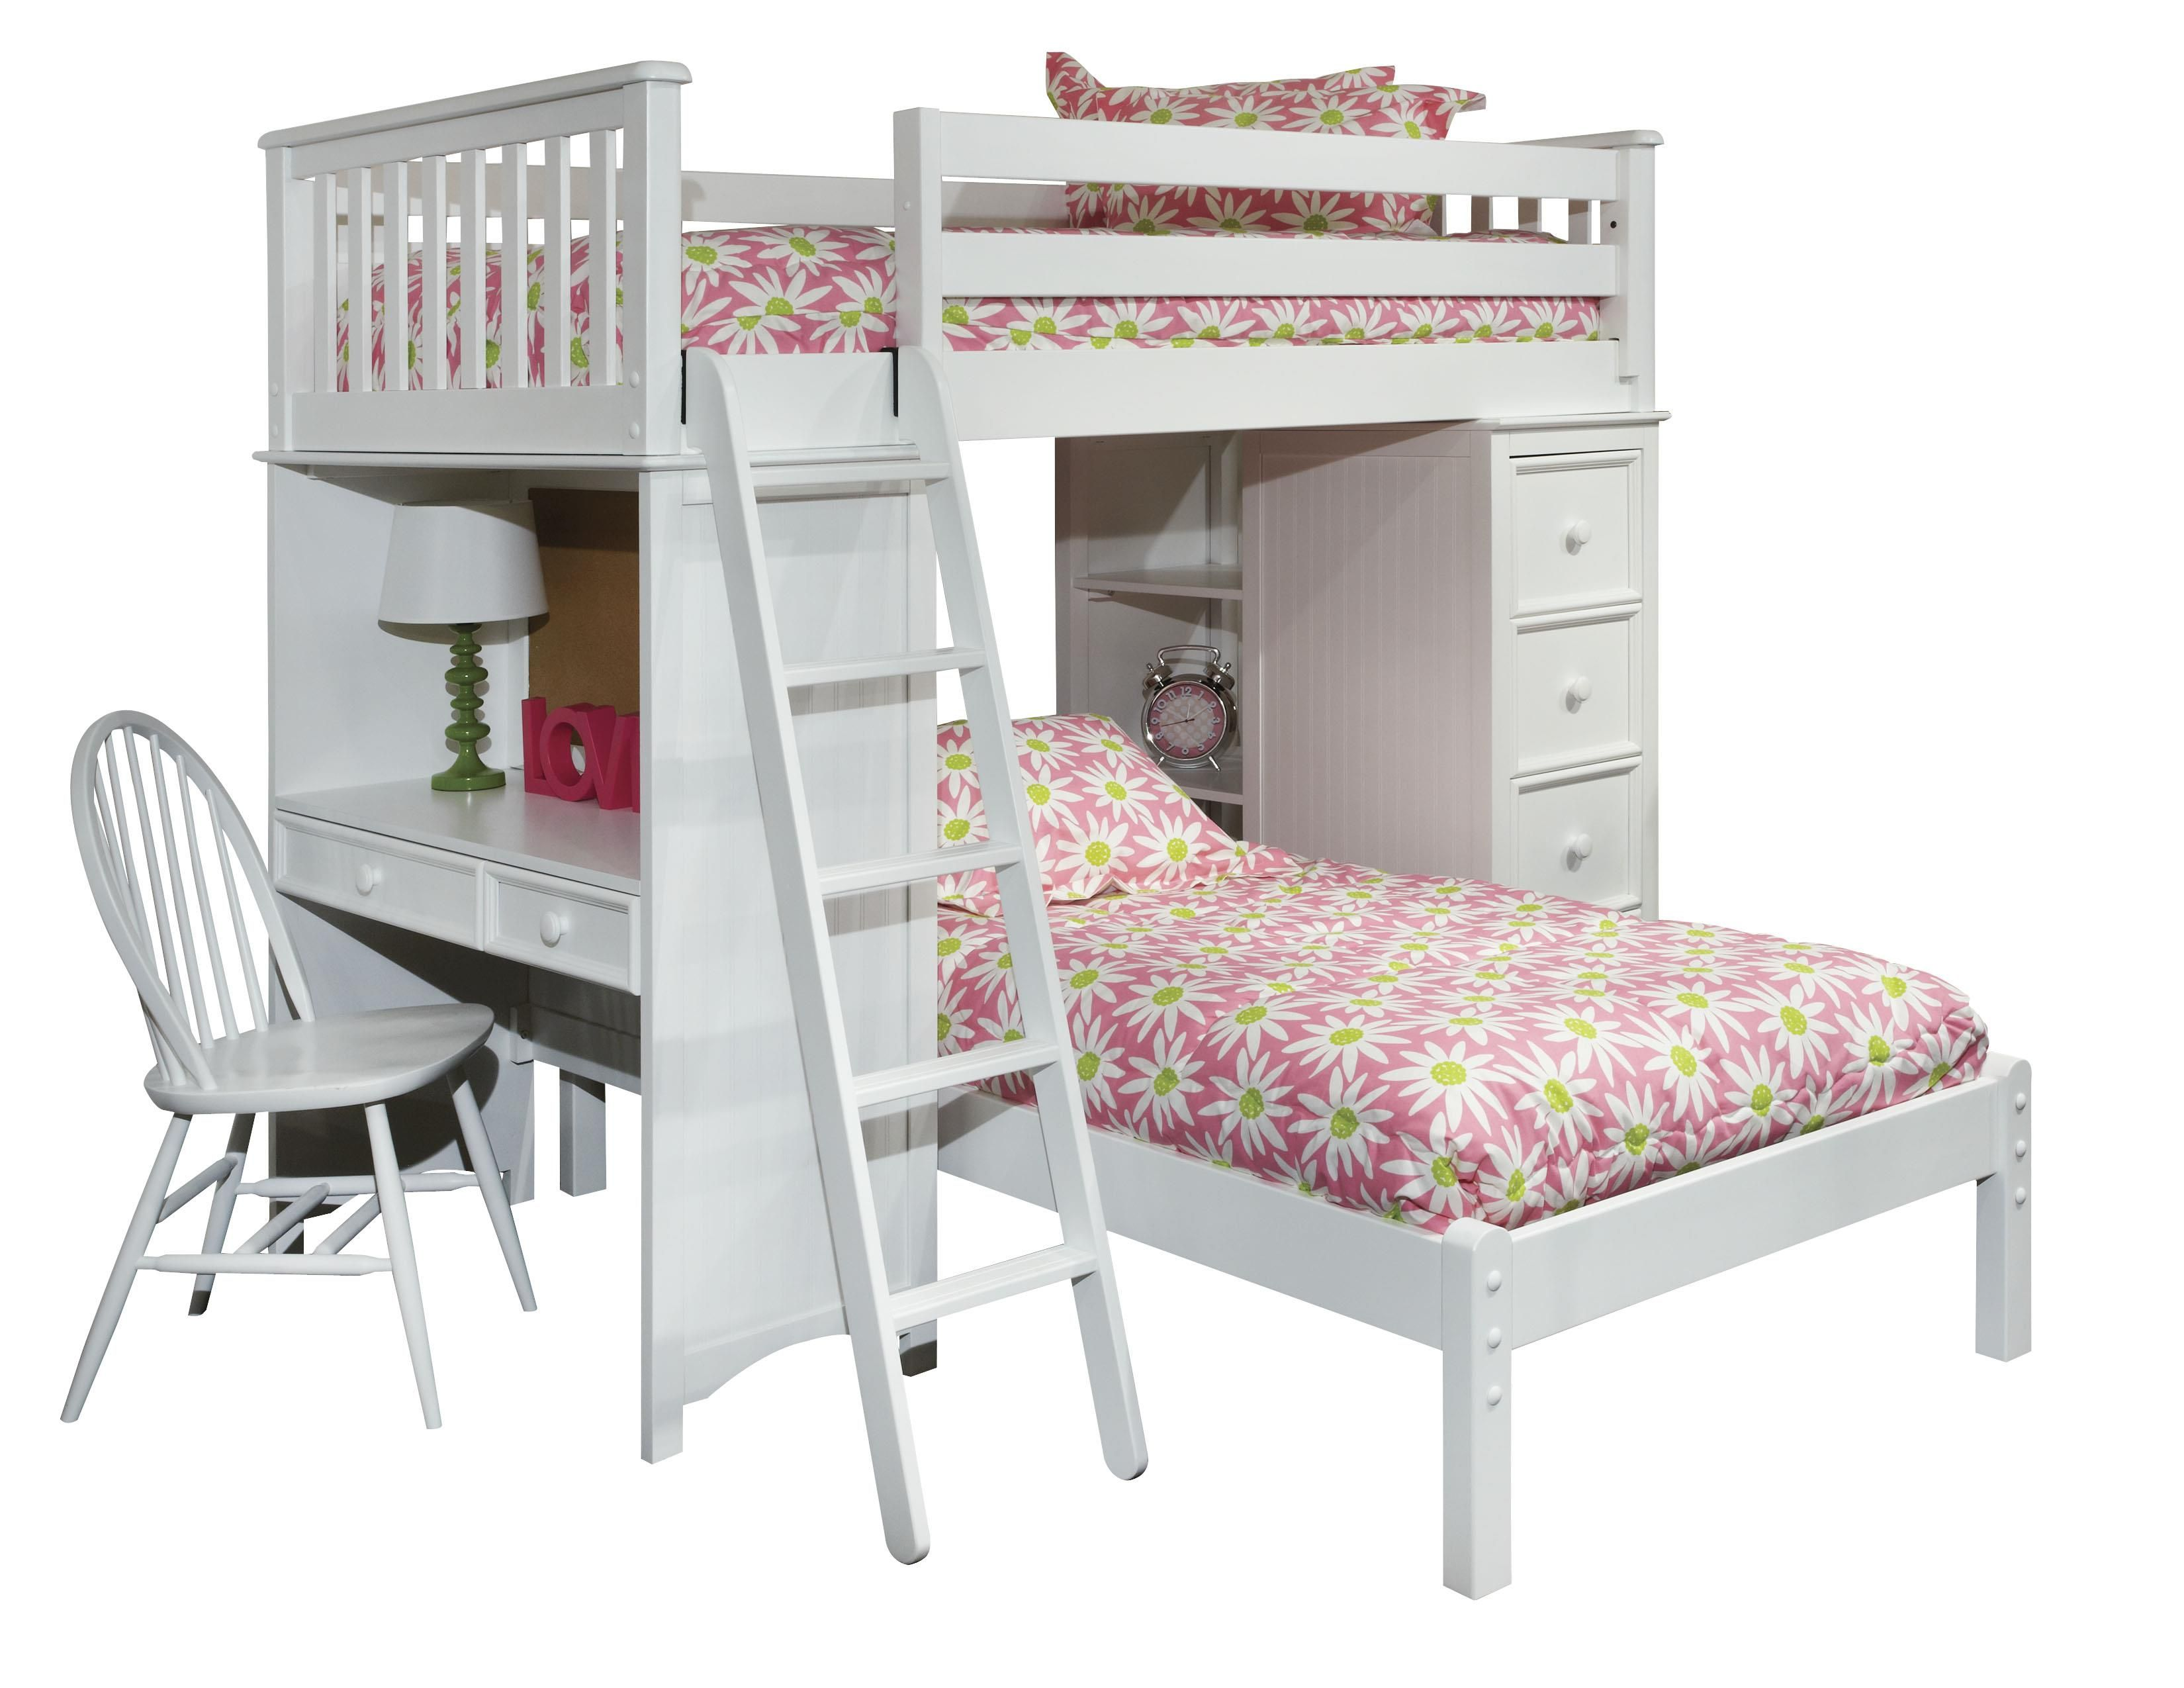 Loft bed with desk and chair  Mulberry Twin Bunk Bed with Desk Chair Sold Separately  Kids